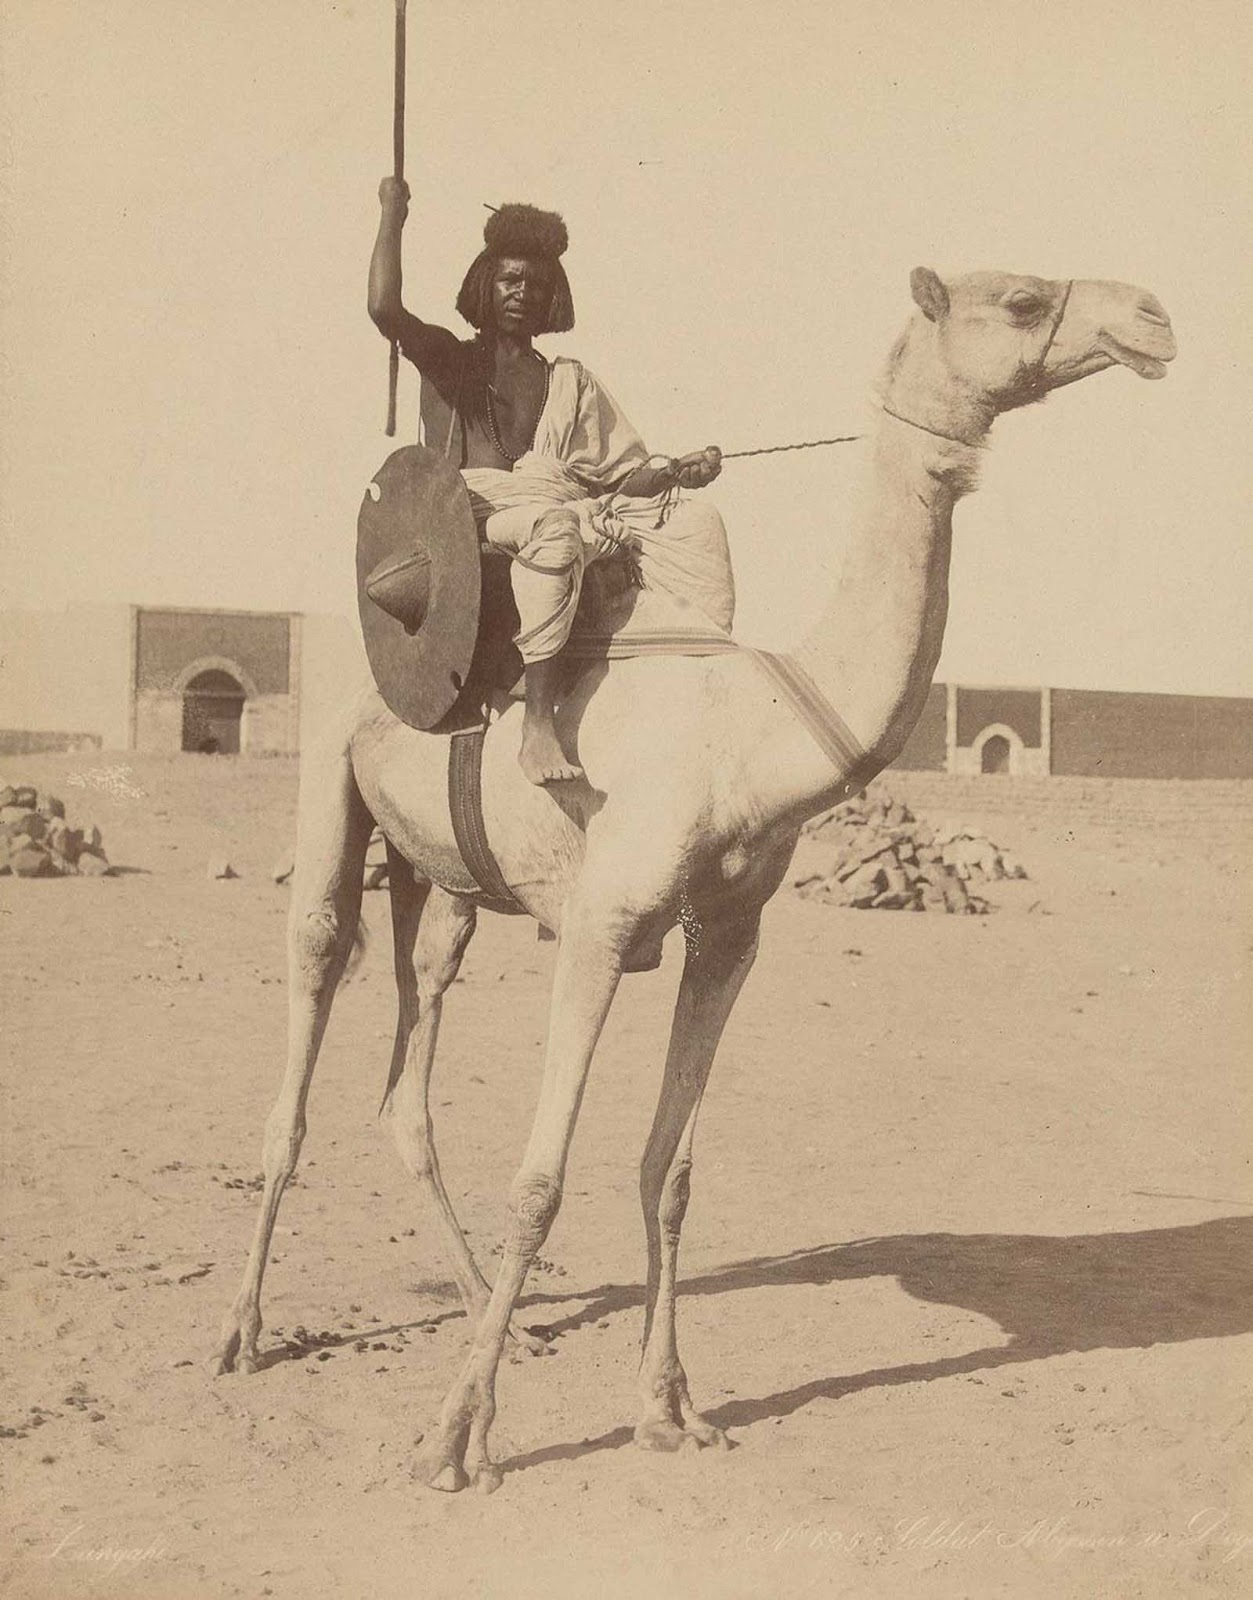 Bicharin soldier on a camel.